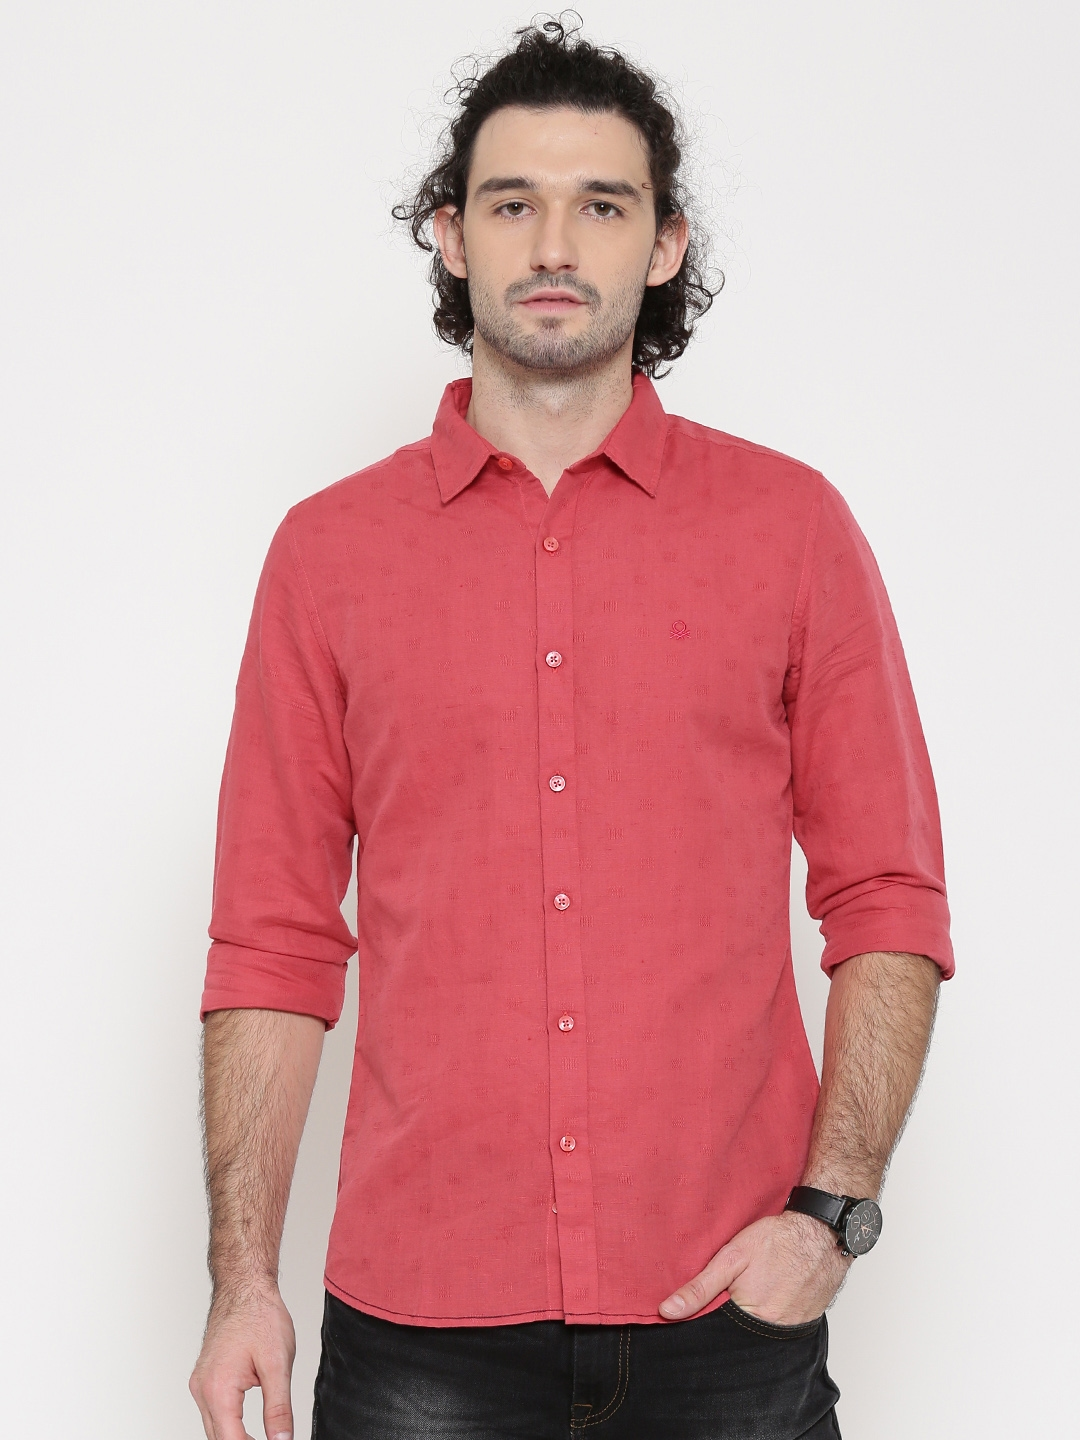 Buy United Colors Of Benetton Men Coral Pink Patterned Casual Shirt